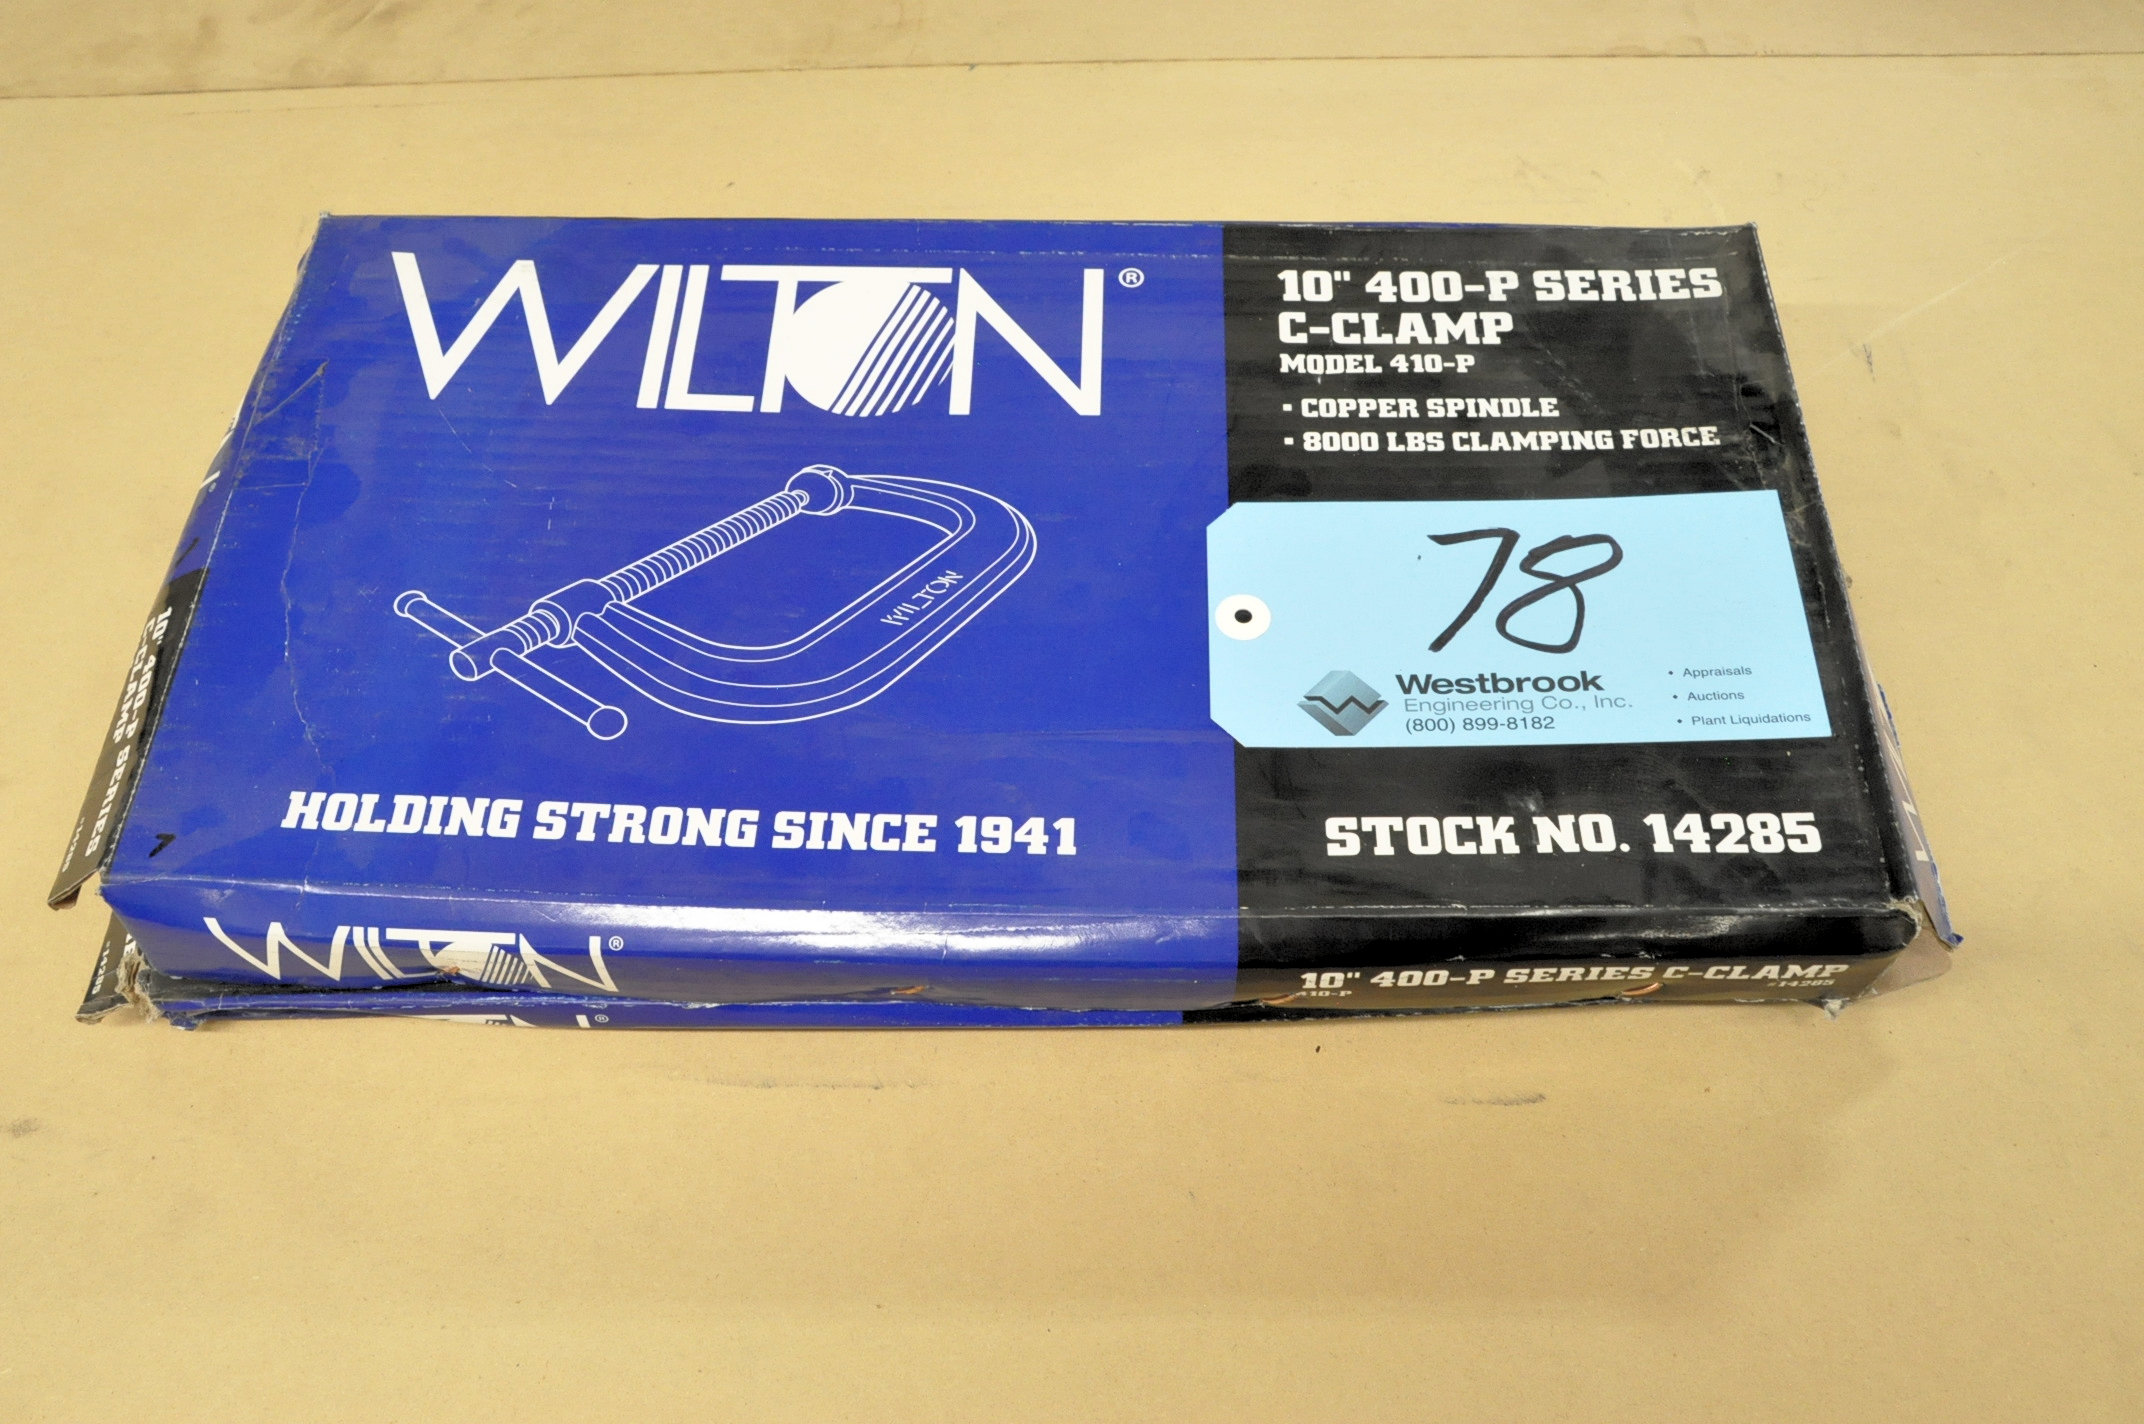 "Lot-(2) Wilton No, 410-P, 10"" C-Clamps, (Packaged)"